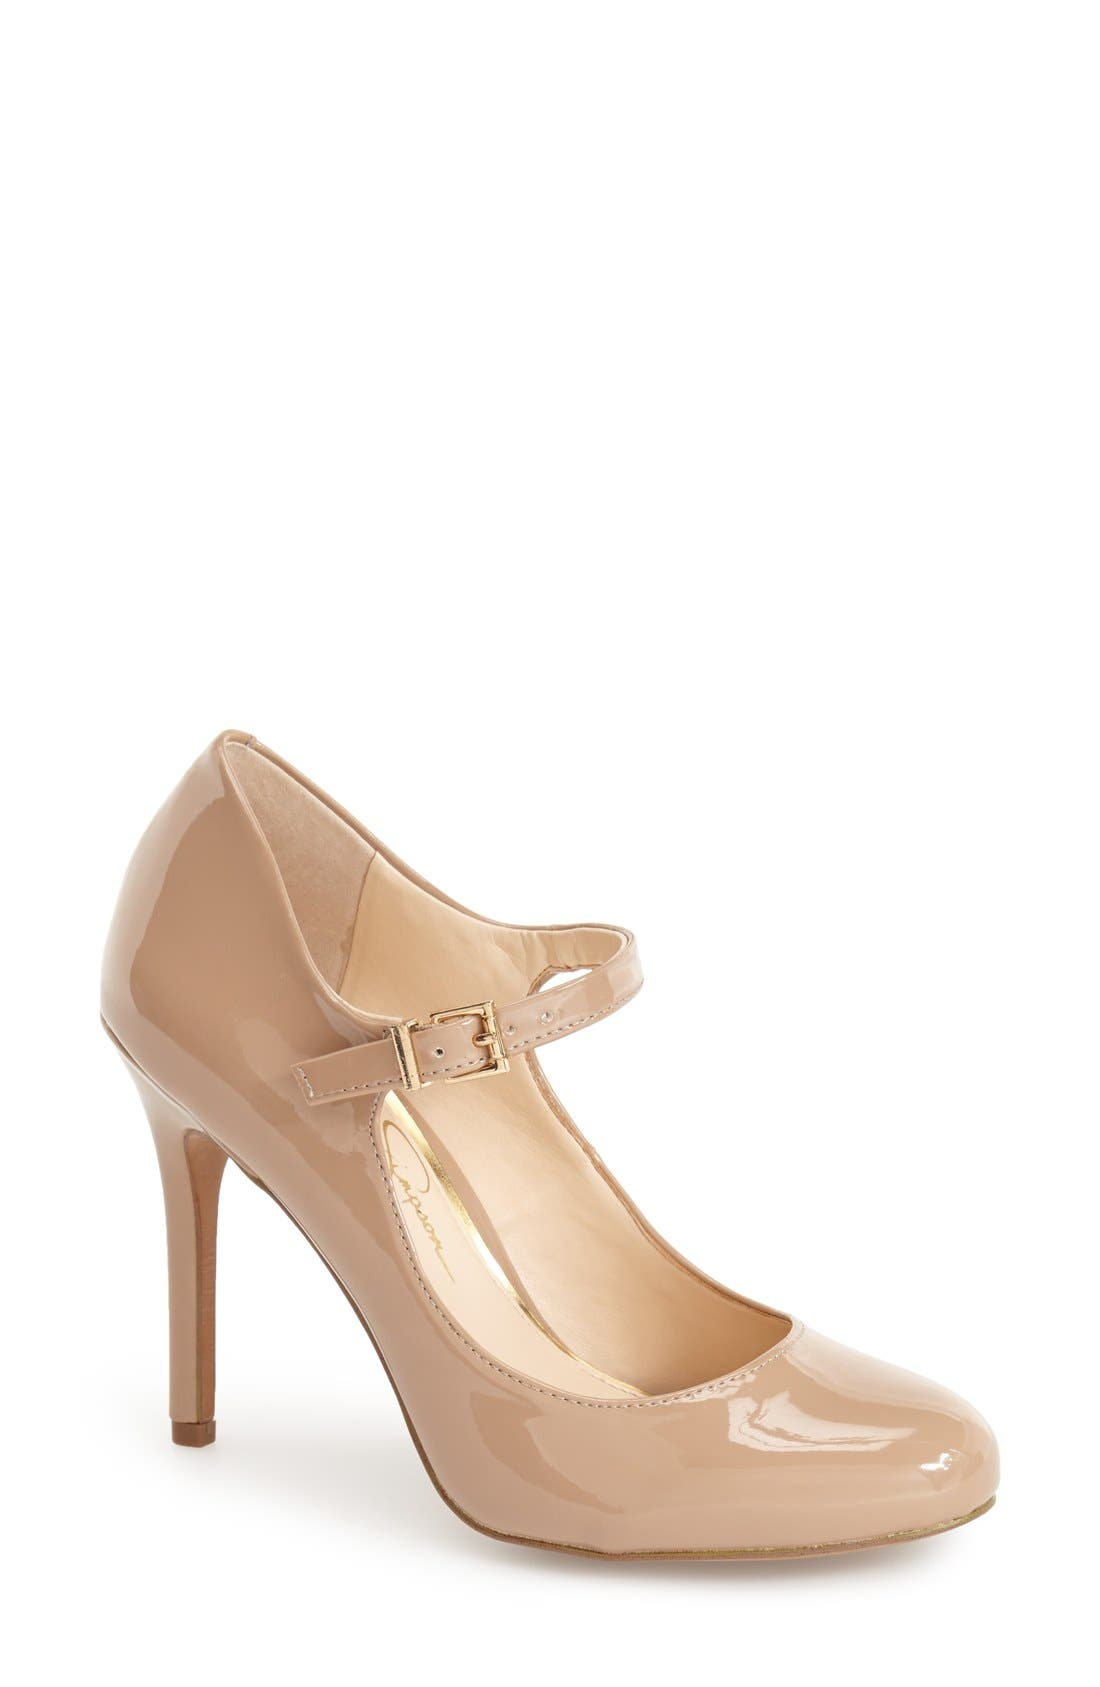 Main Image - Jessica Simpson 'Raelyn' Mary Jane Pump (Women)